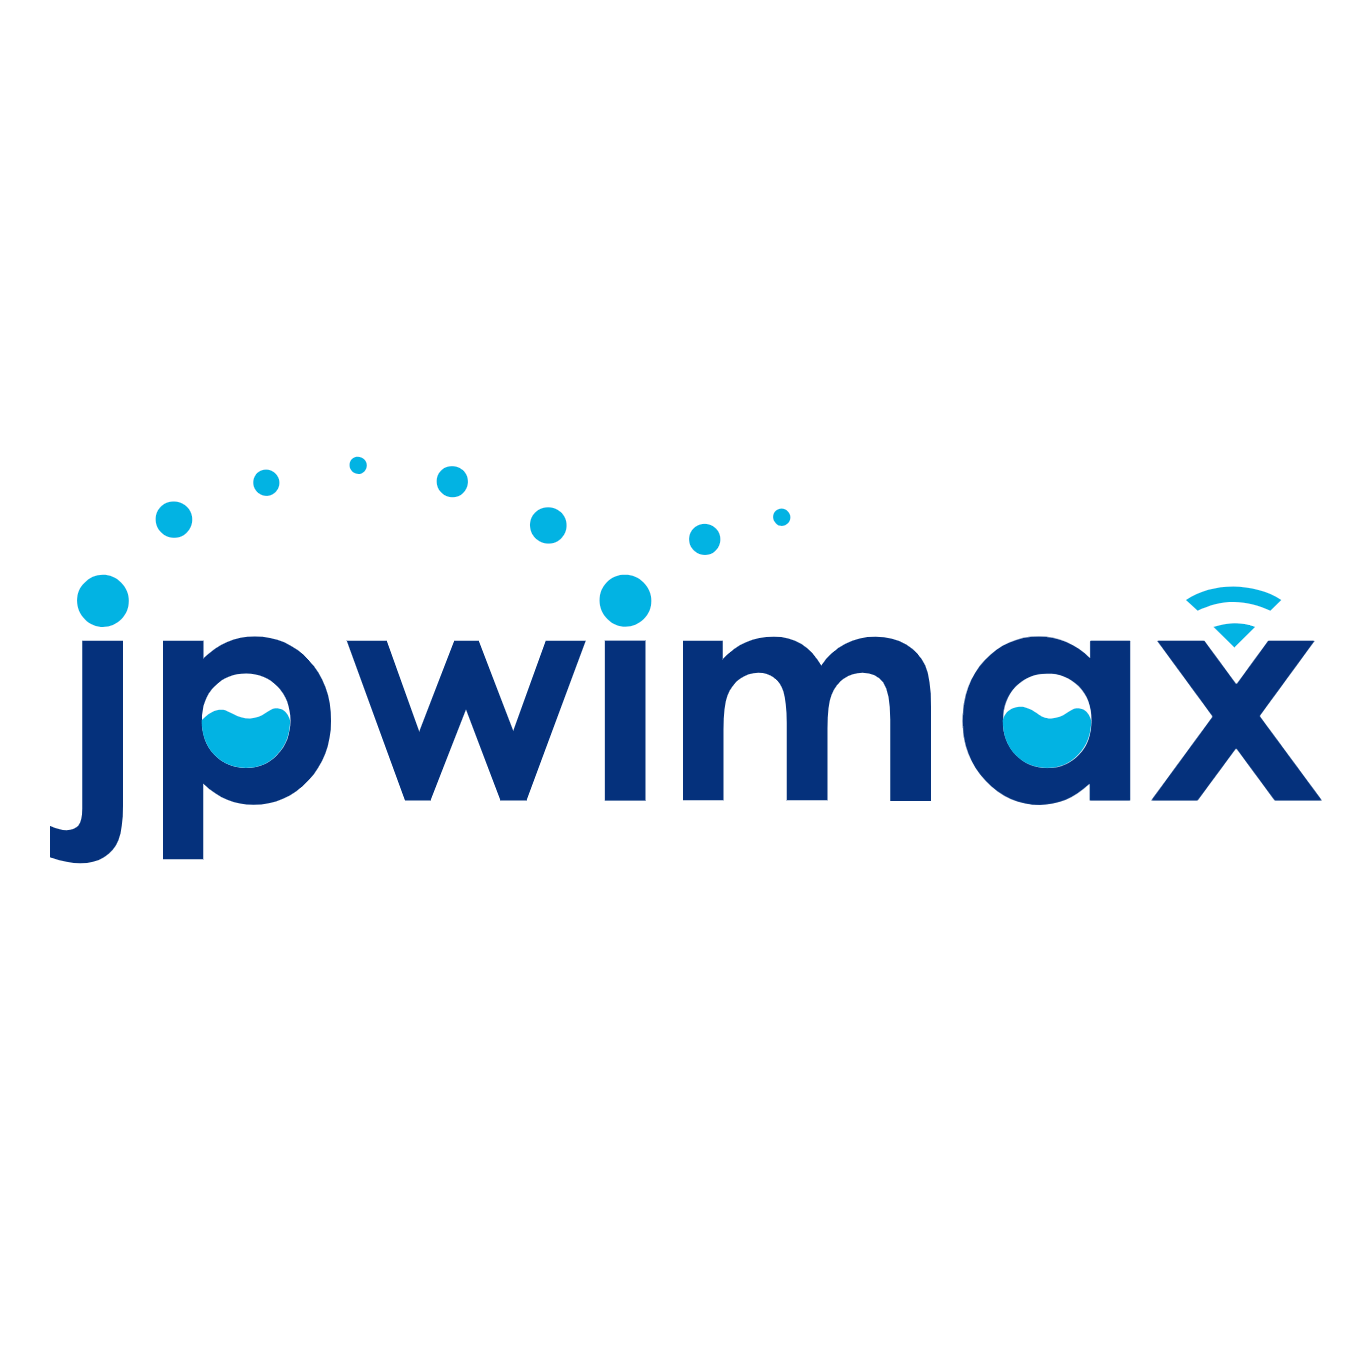 JPWiMAXロゴ